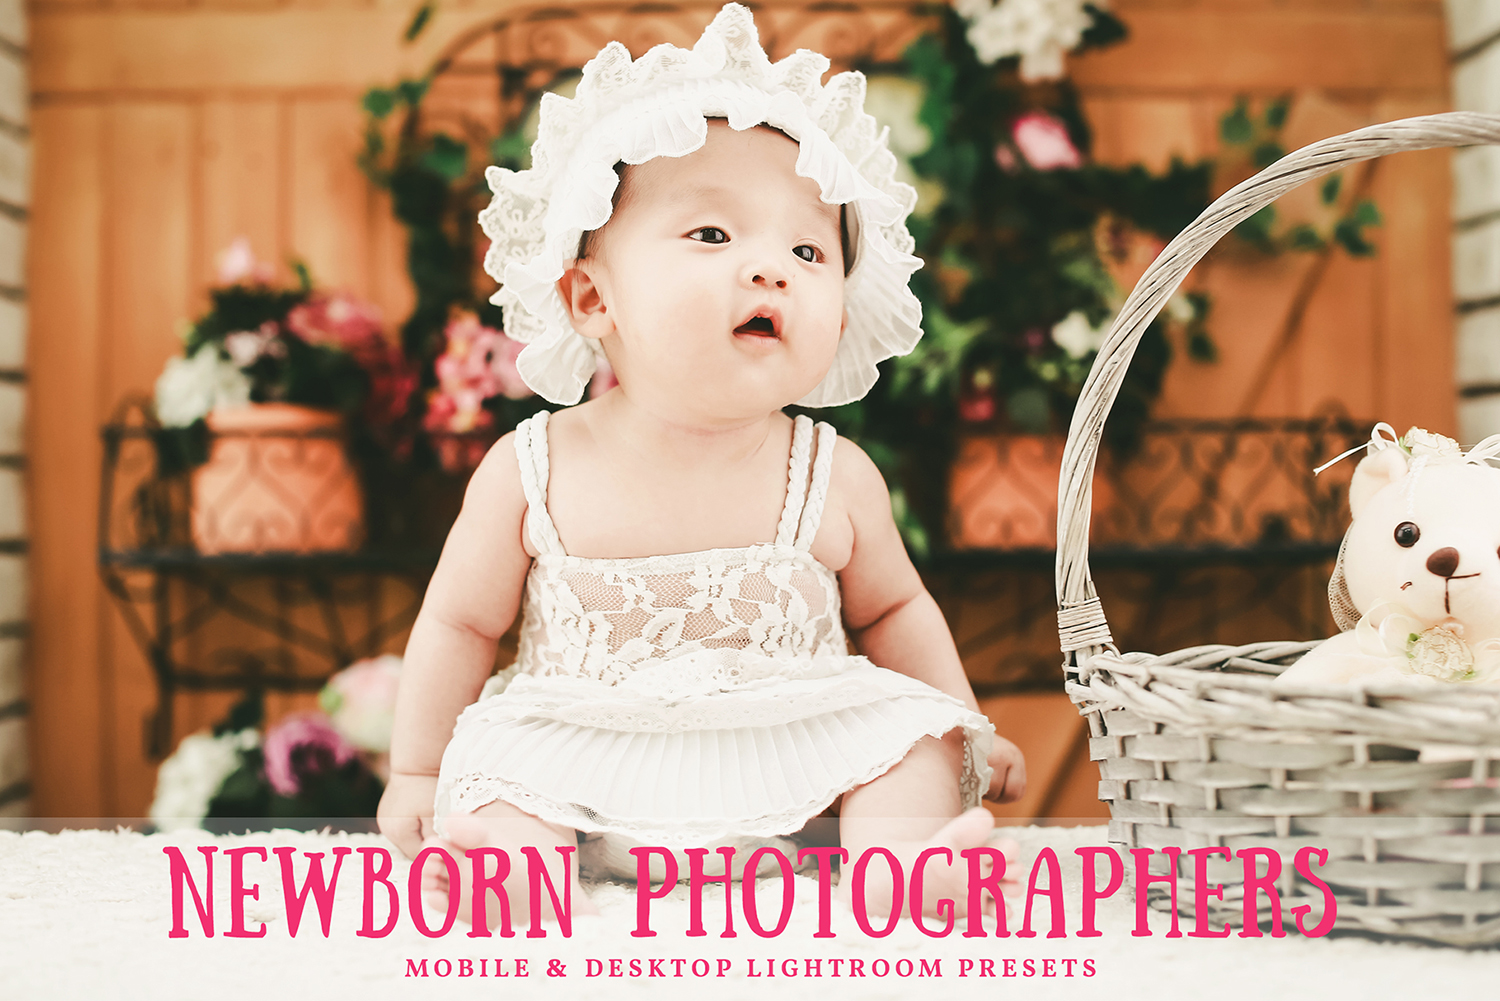 Newborn Photographers Mobile and Desktop Lightroom Presets example image 1